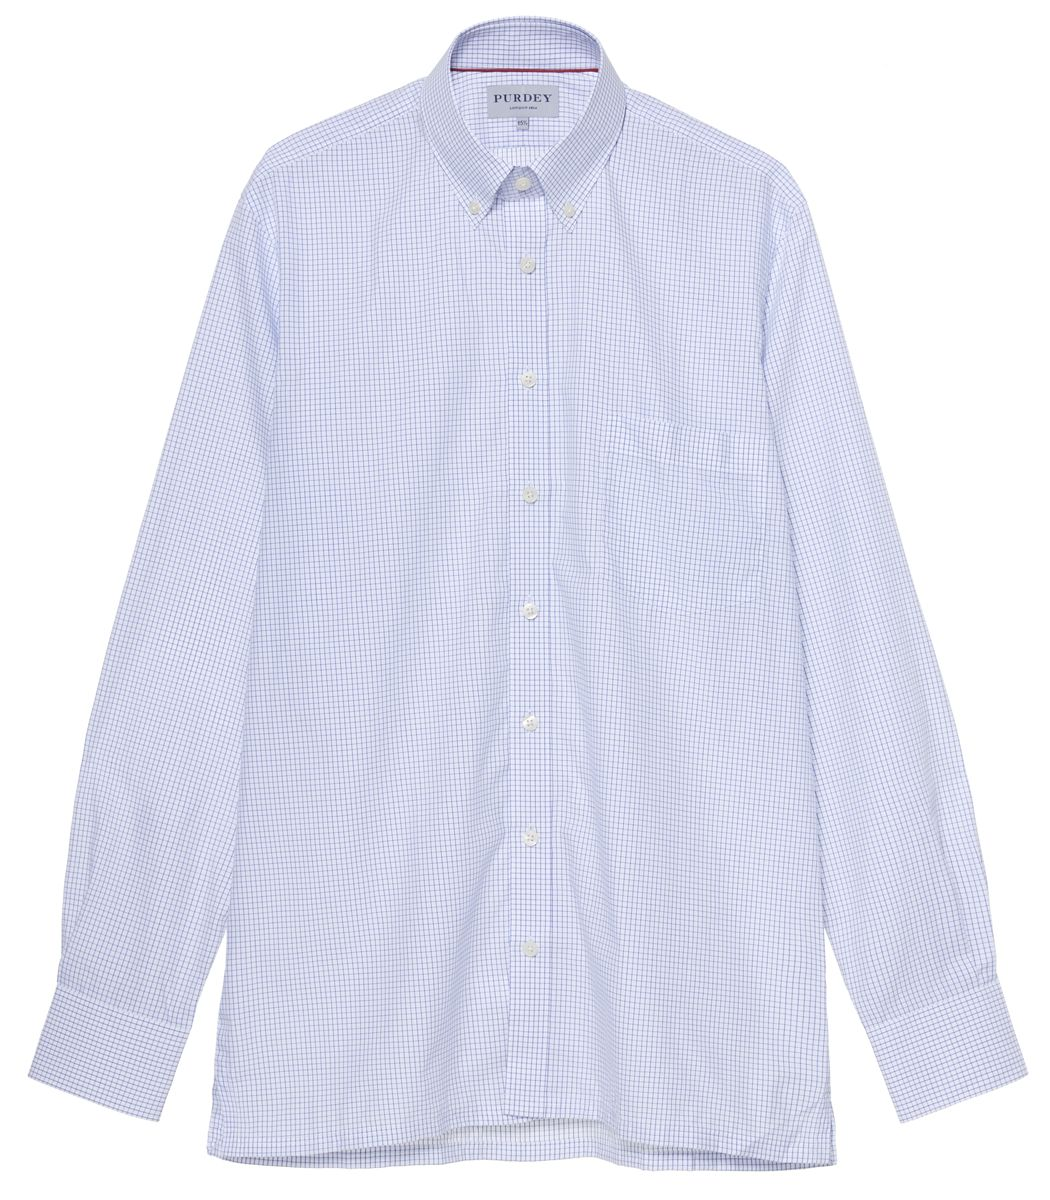 MEN'S CHECK POPLIN BUTTON DOWN COLLAR SHIRT